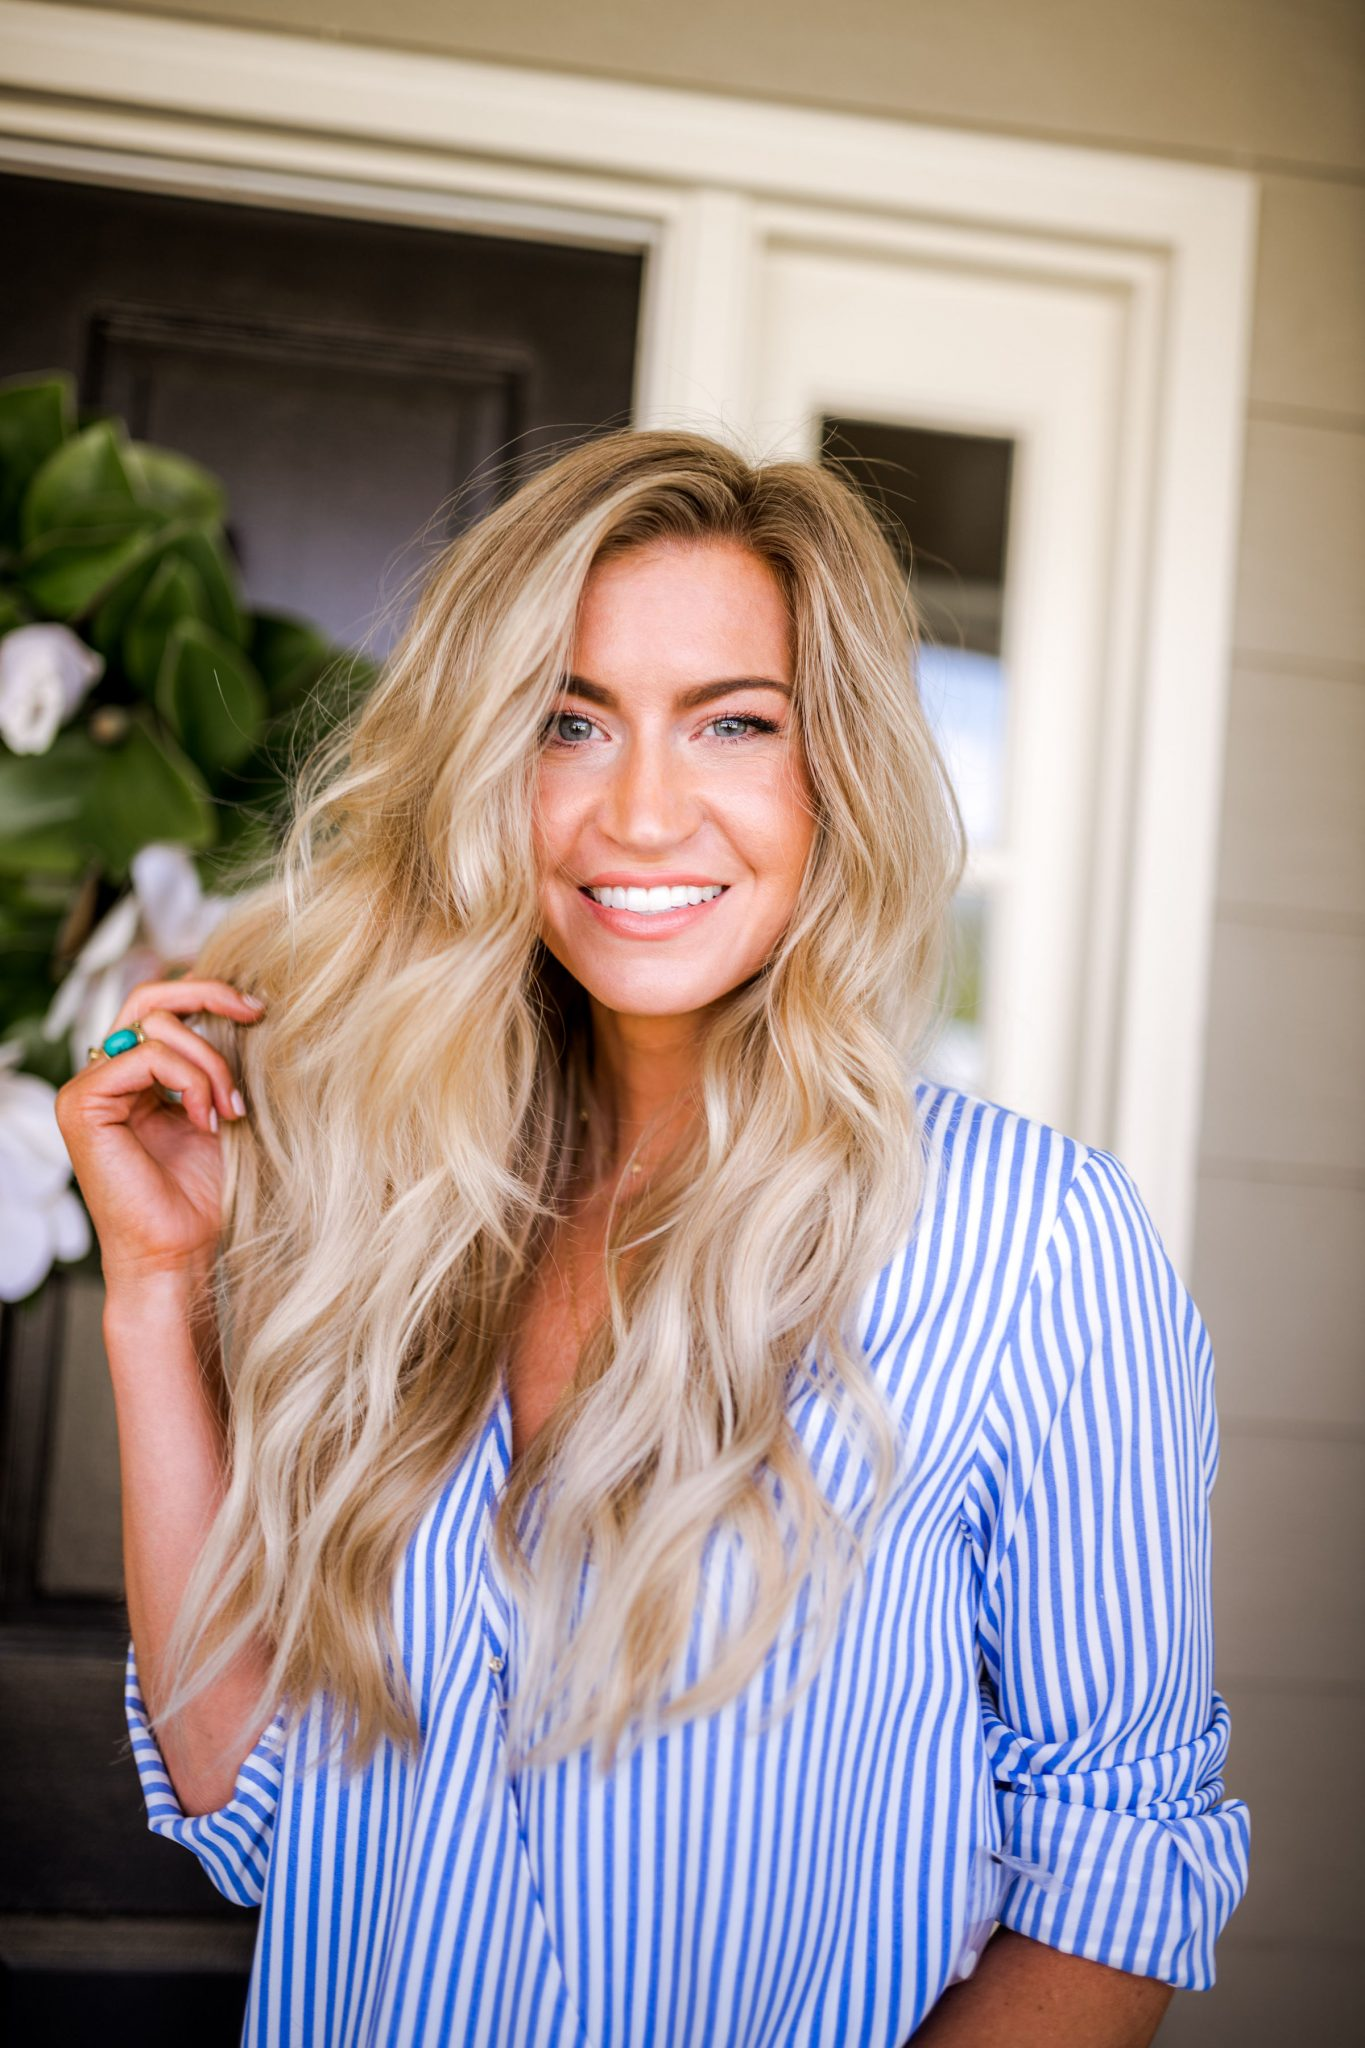 Hair products I use for volume and shine